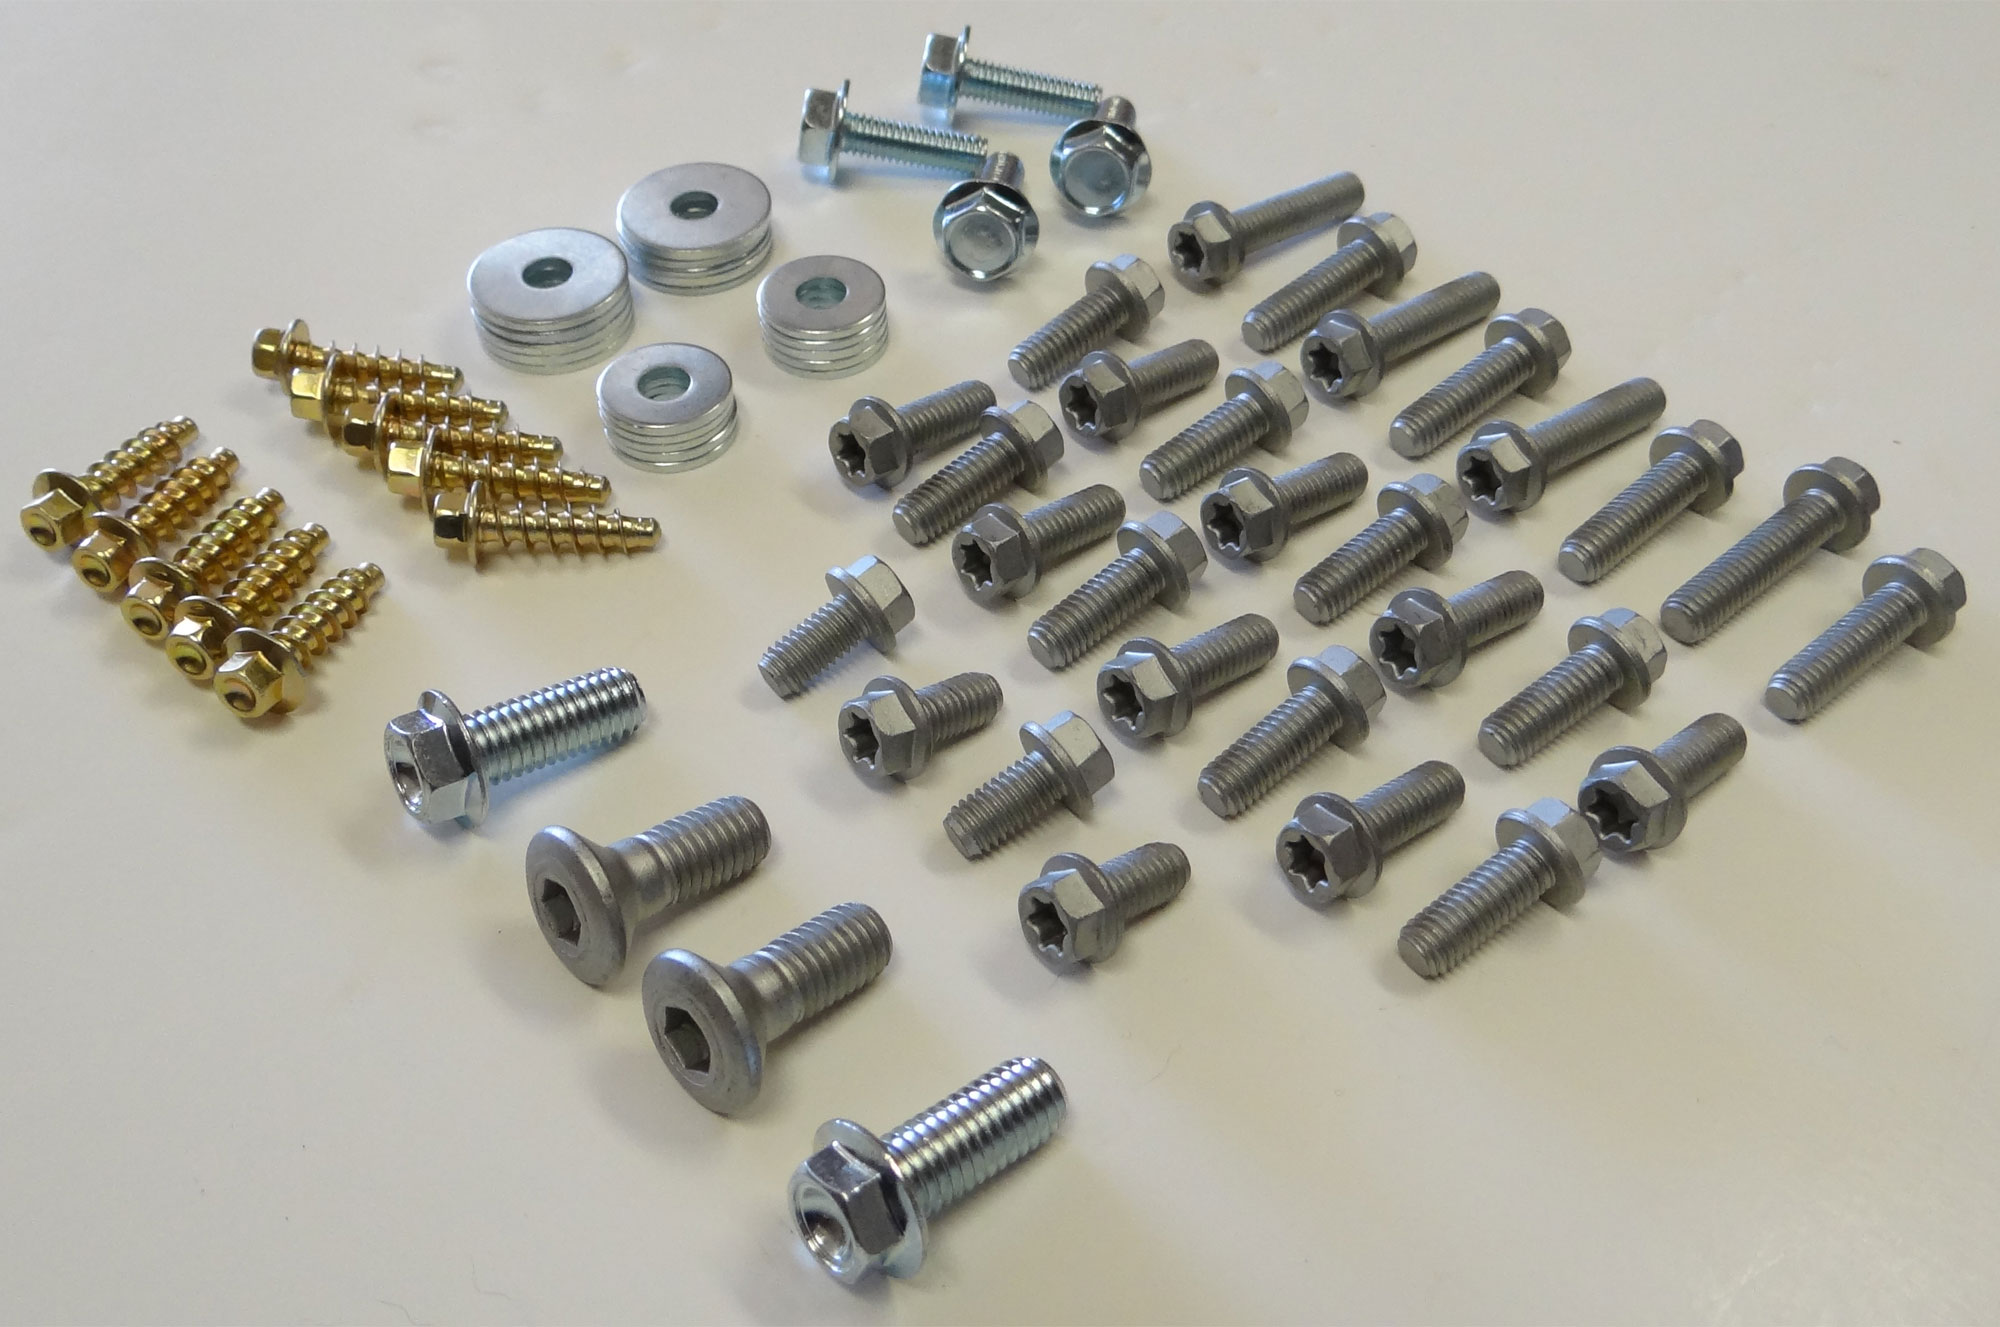 KTM 66 pc Body and Plastics bolt kit